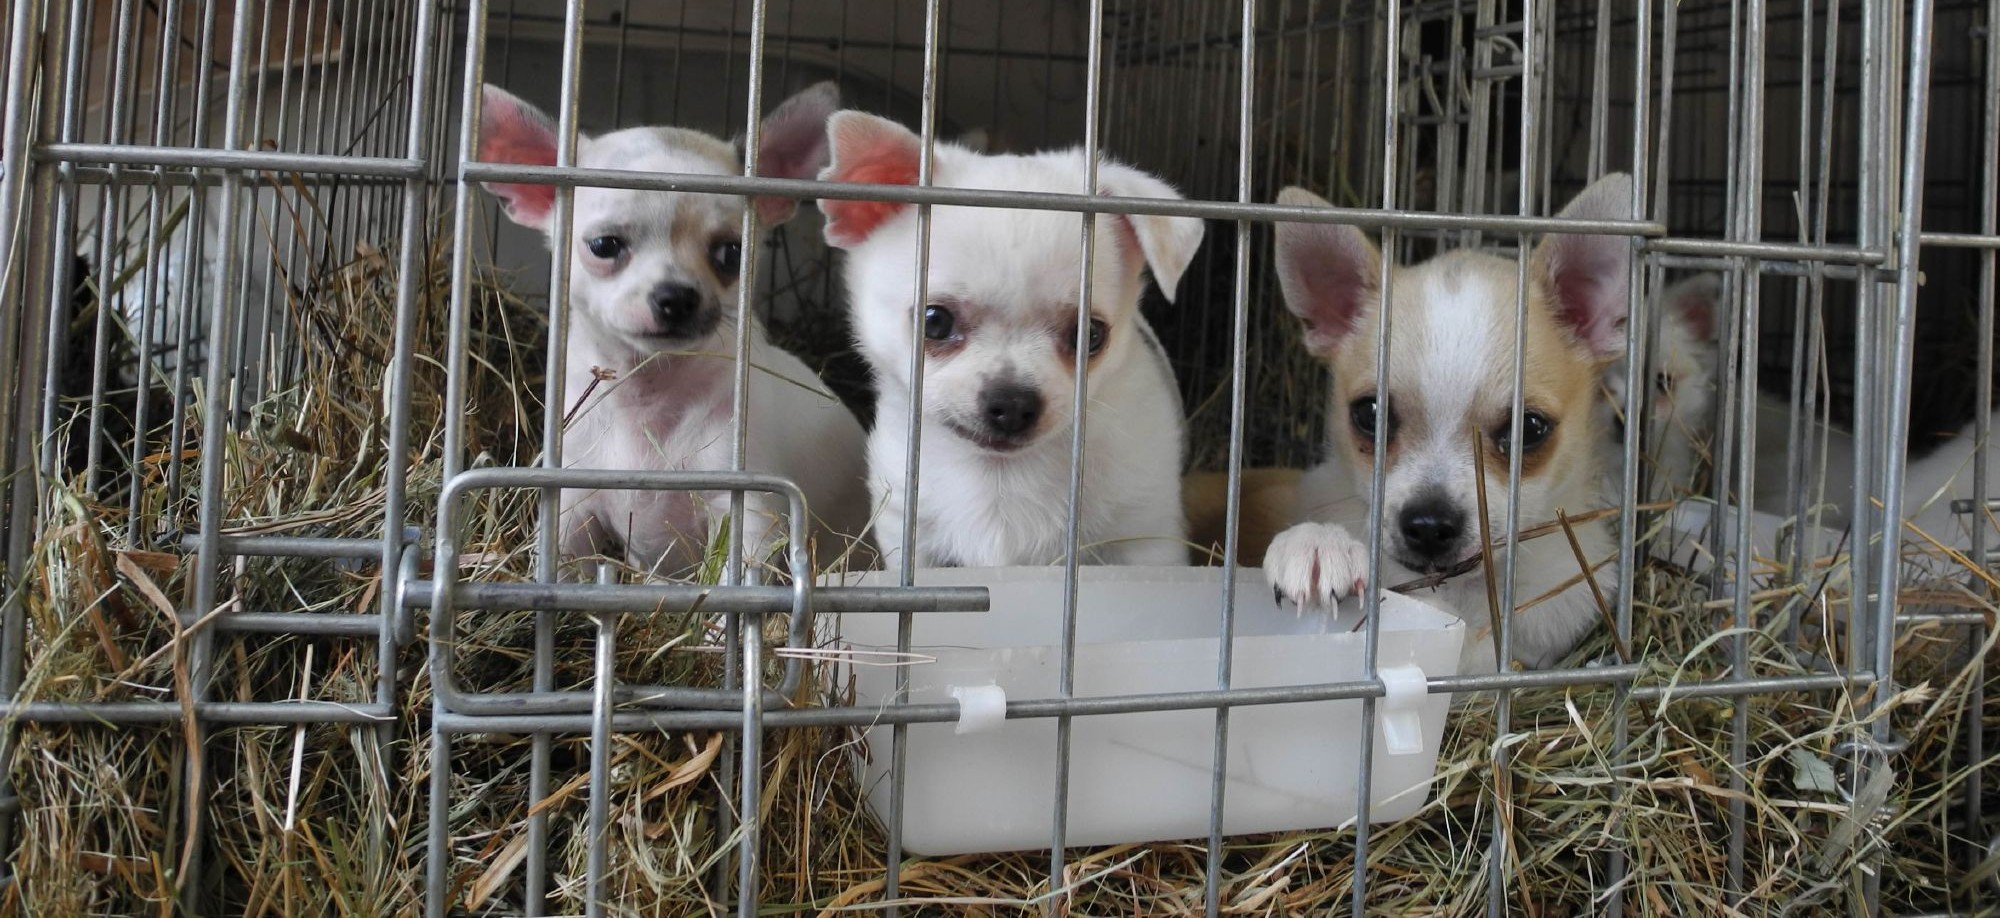 Puppies in puppy farms